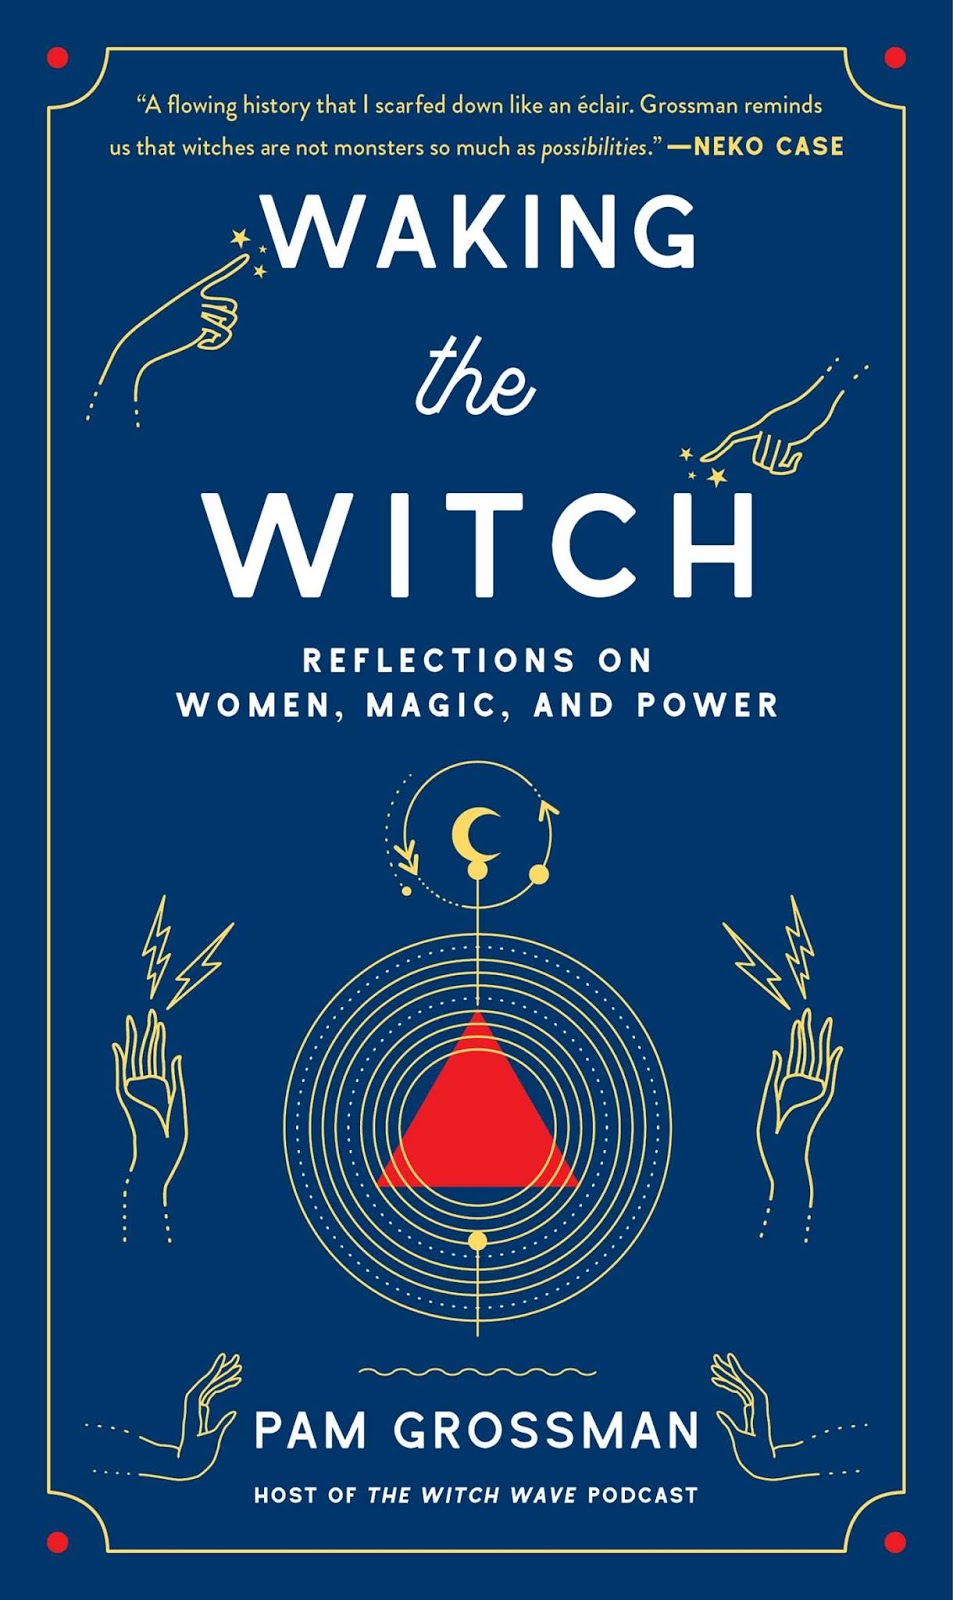 Waking the Witch by Pam Grossman